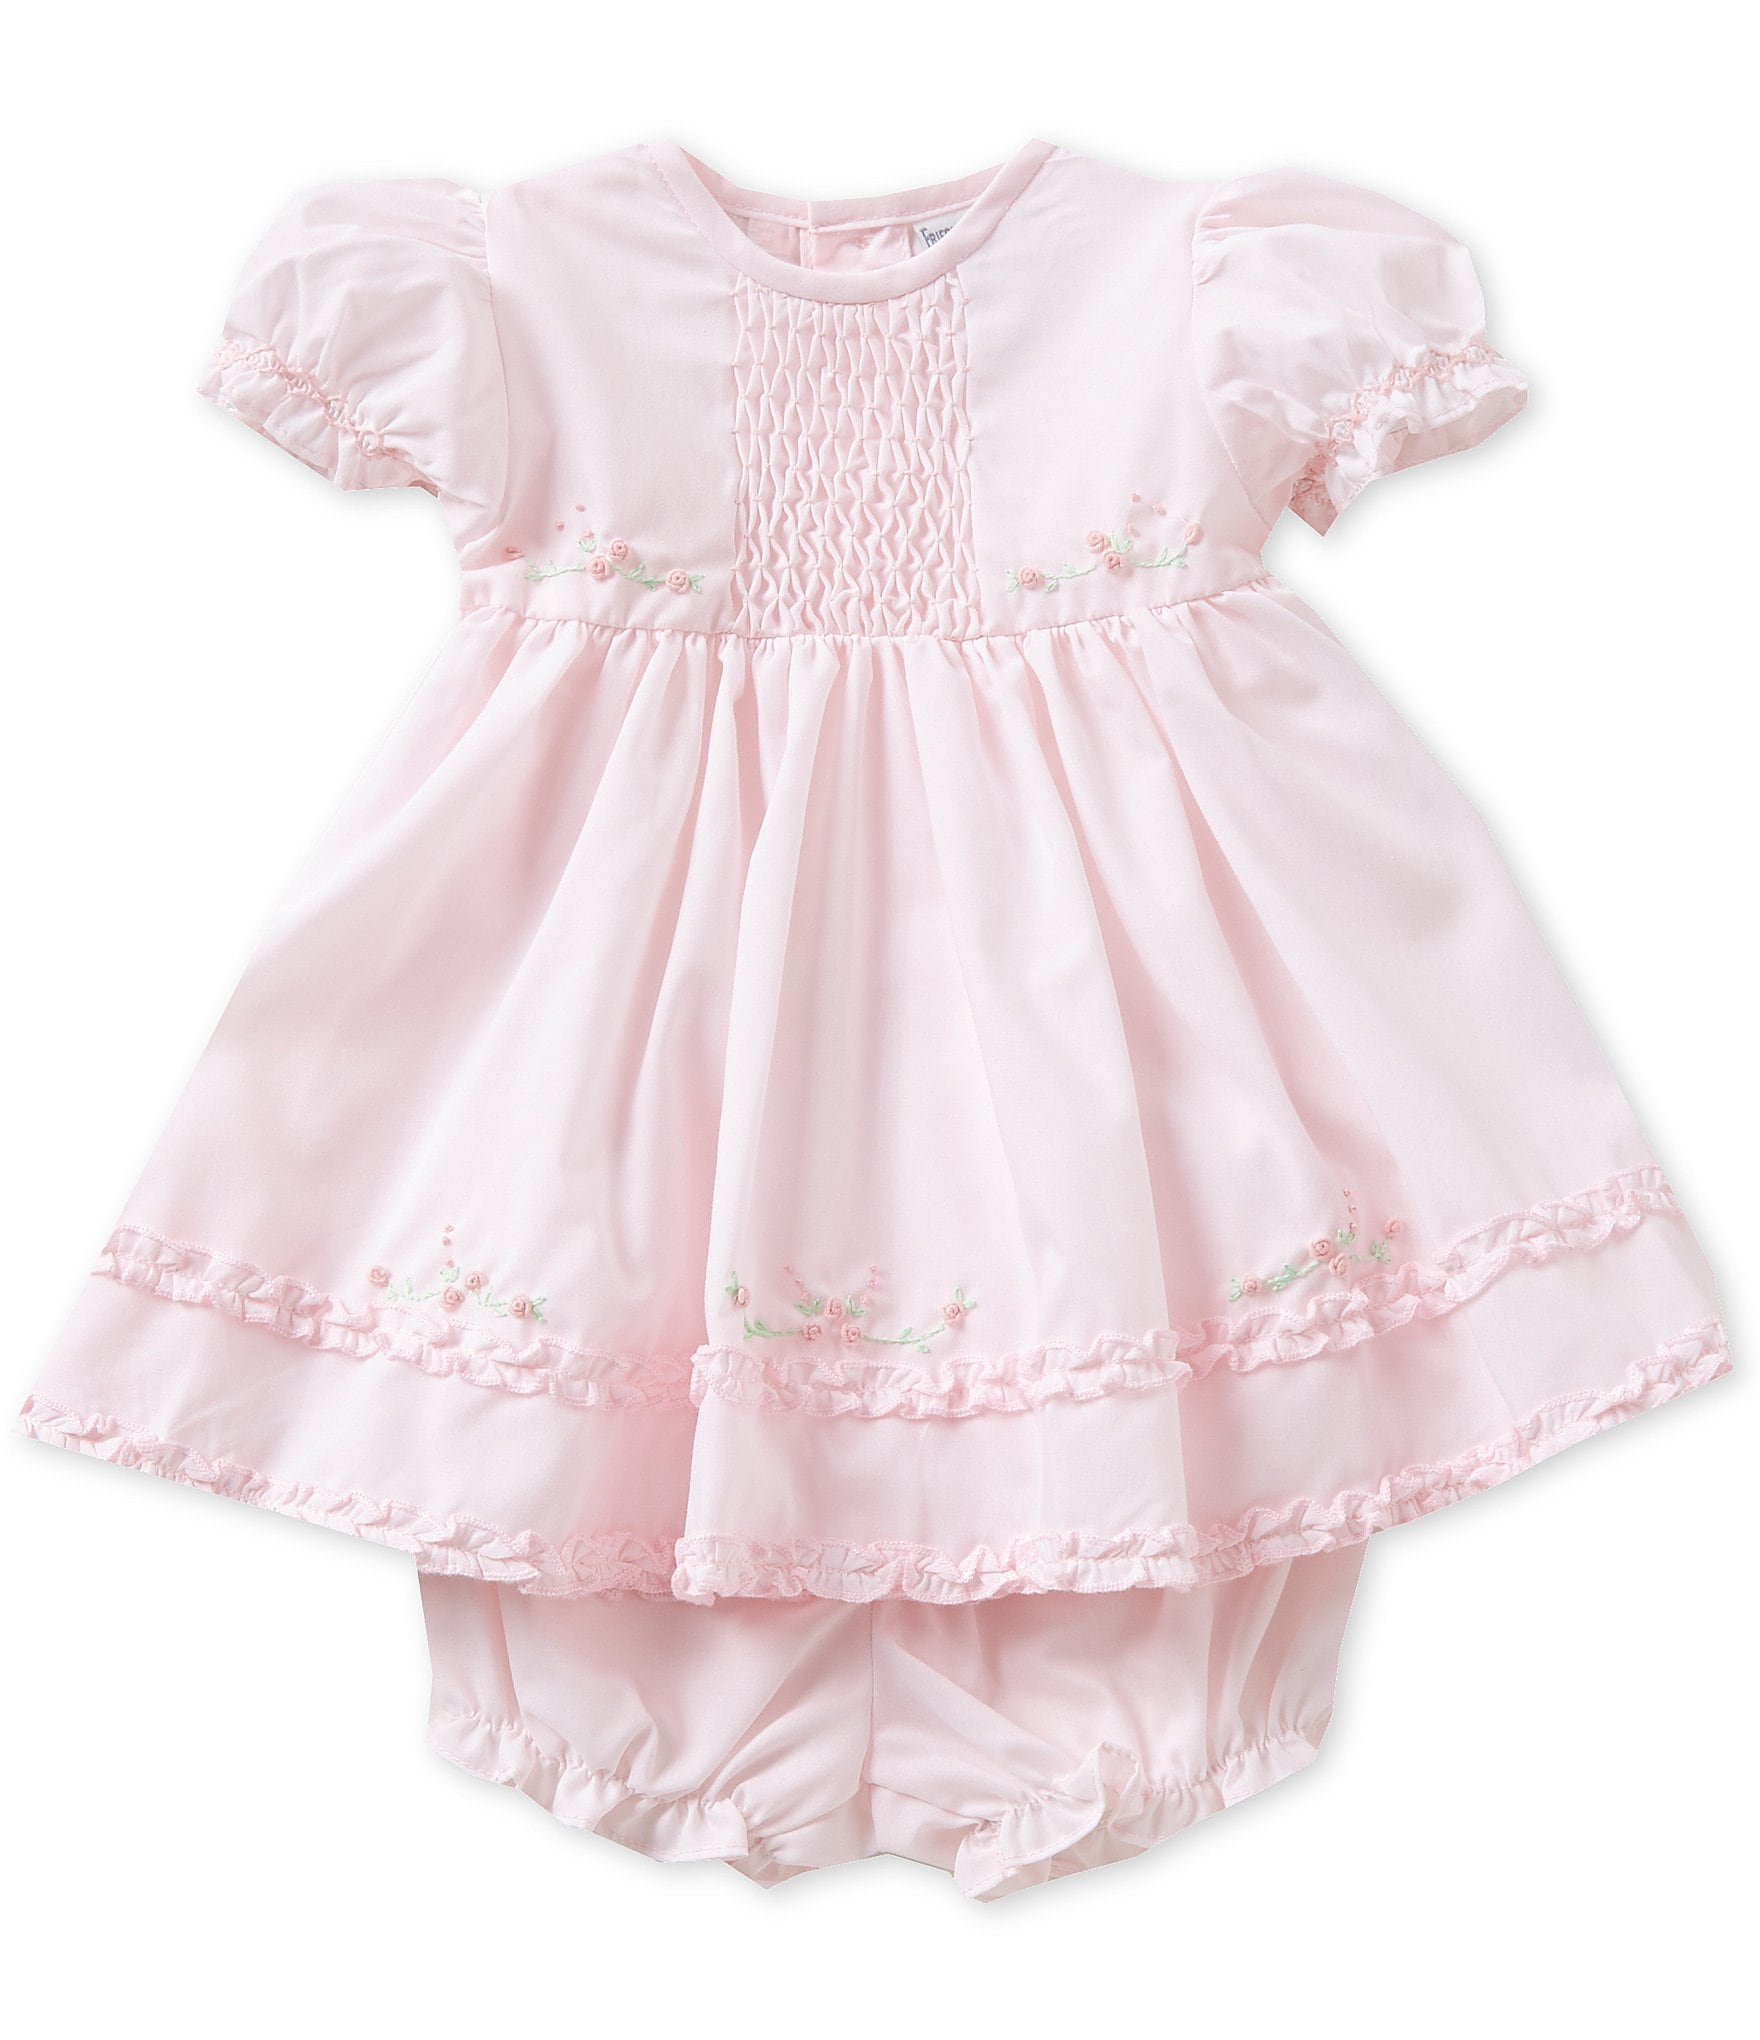 Baby Girl Clothing | Dillards